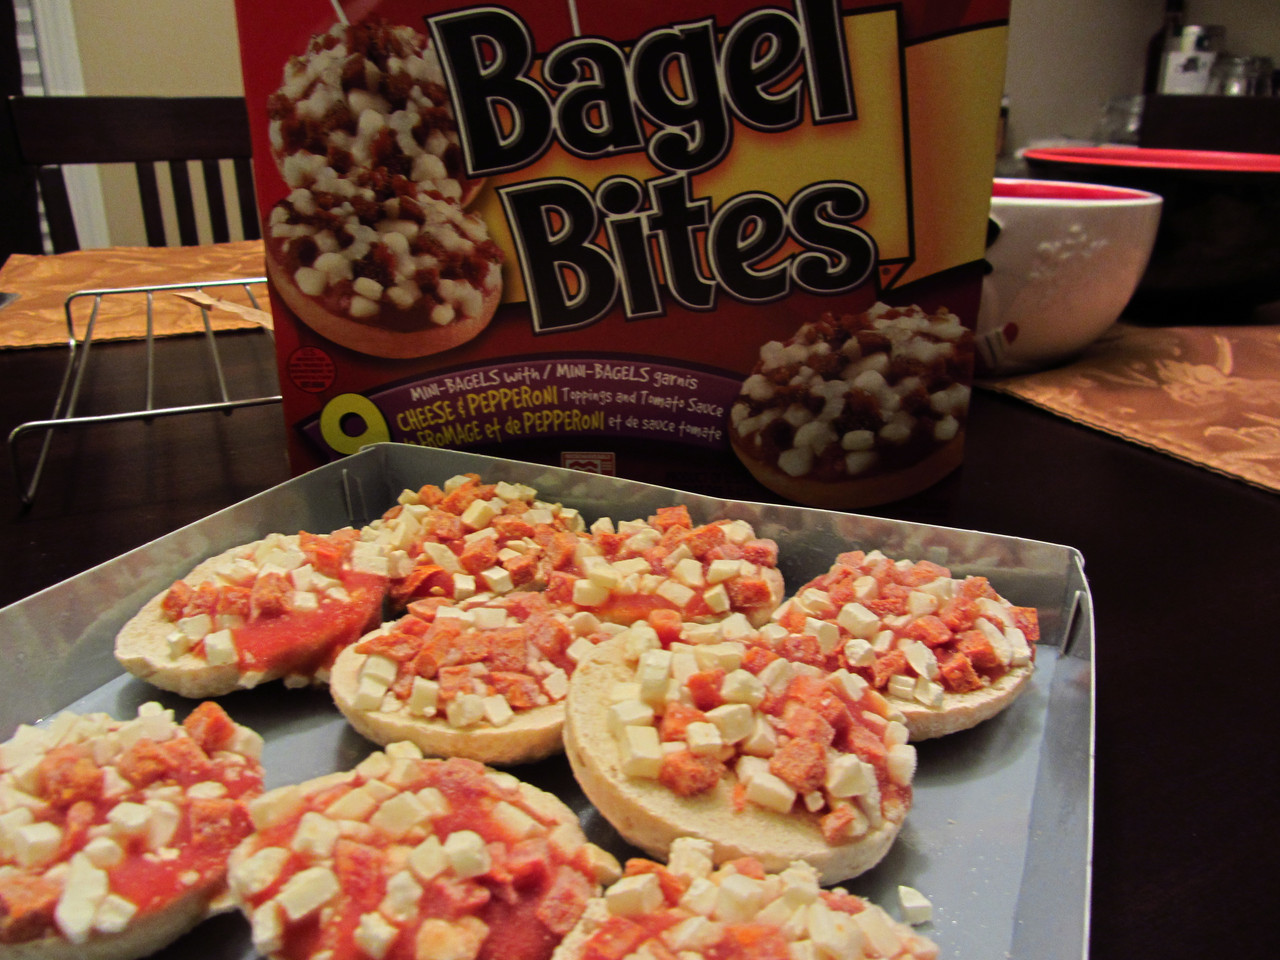 Heinz Bagel Bites Cheese And Pepperoni